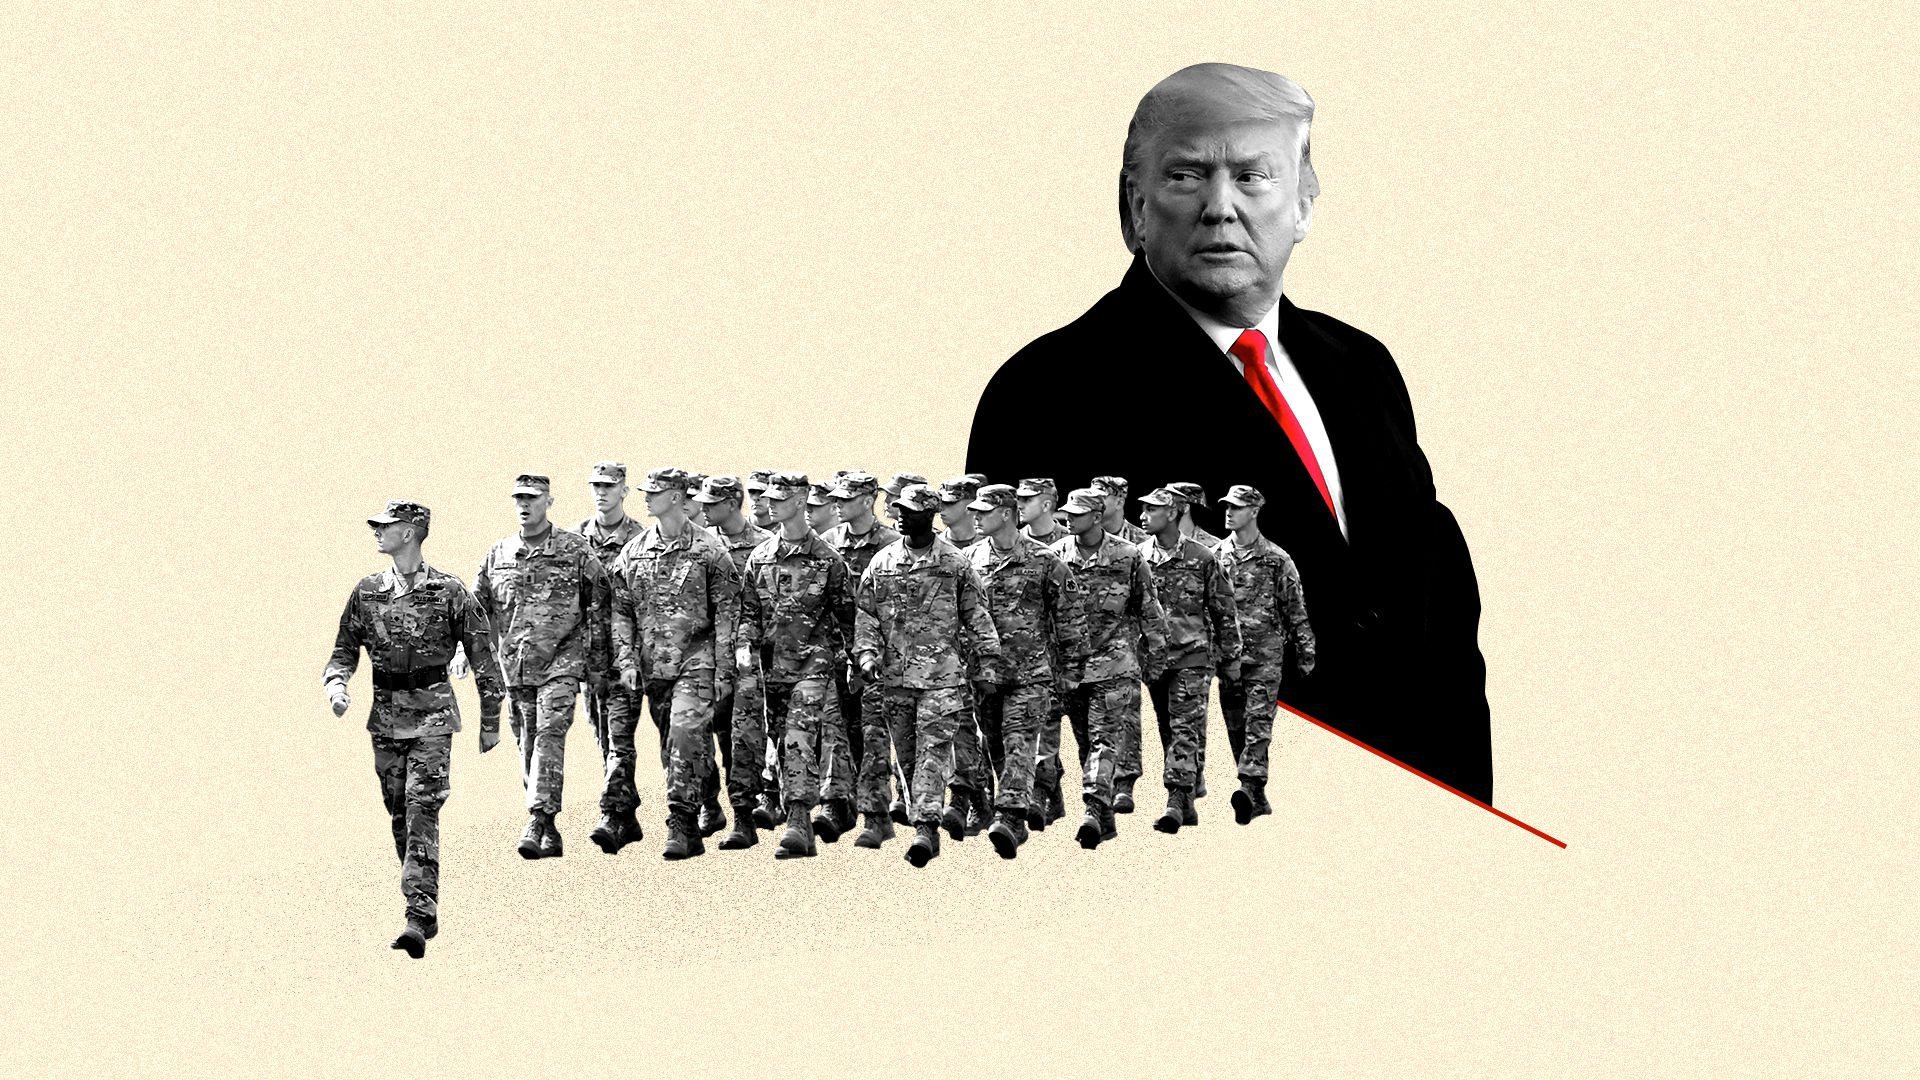 Photo illustration of President Trump and marching soldiers.